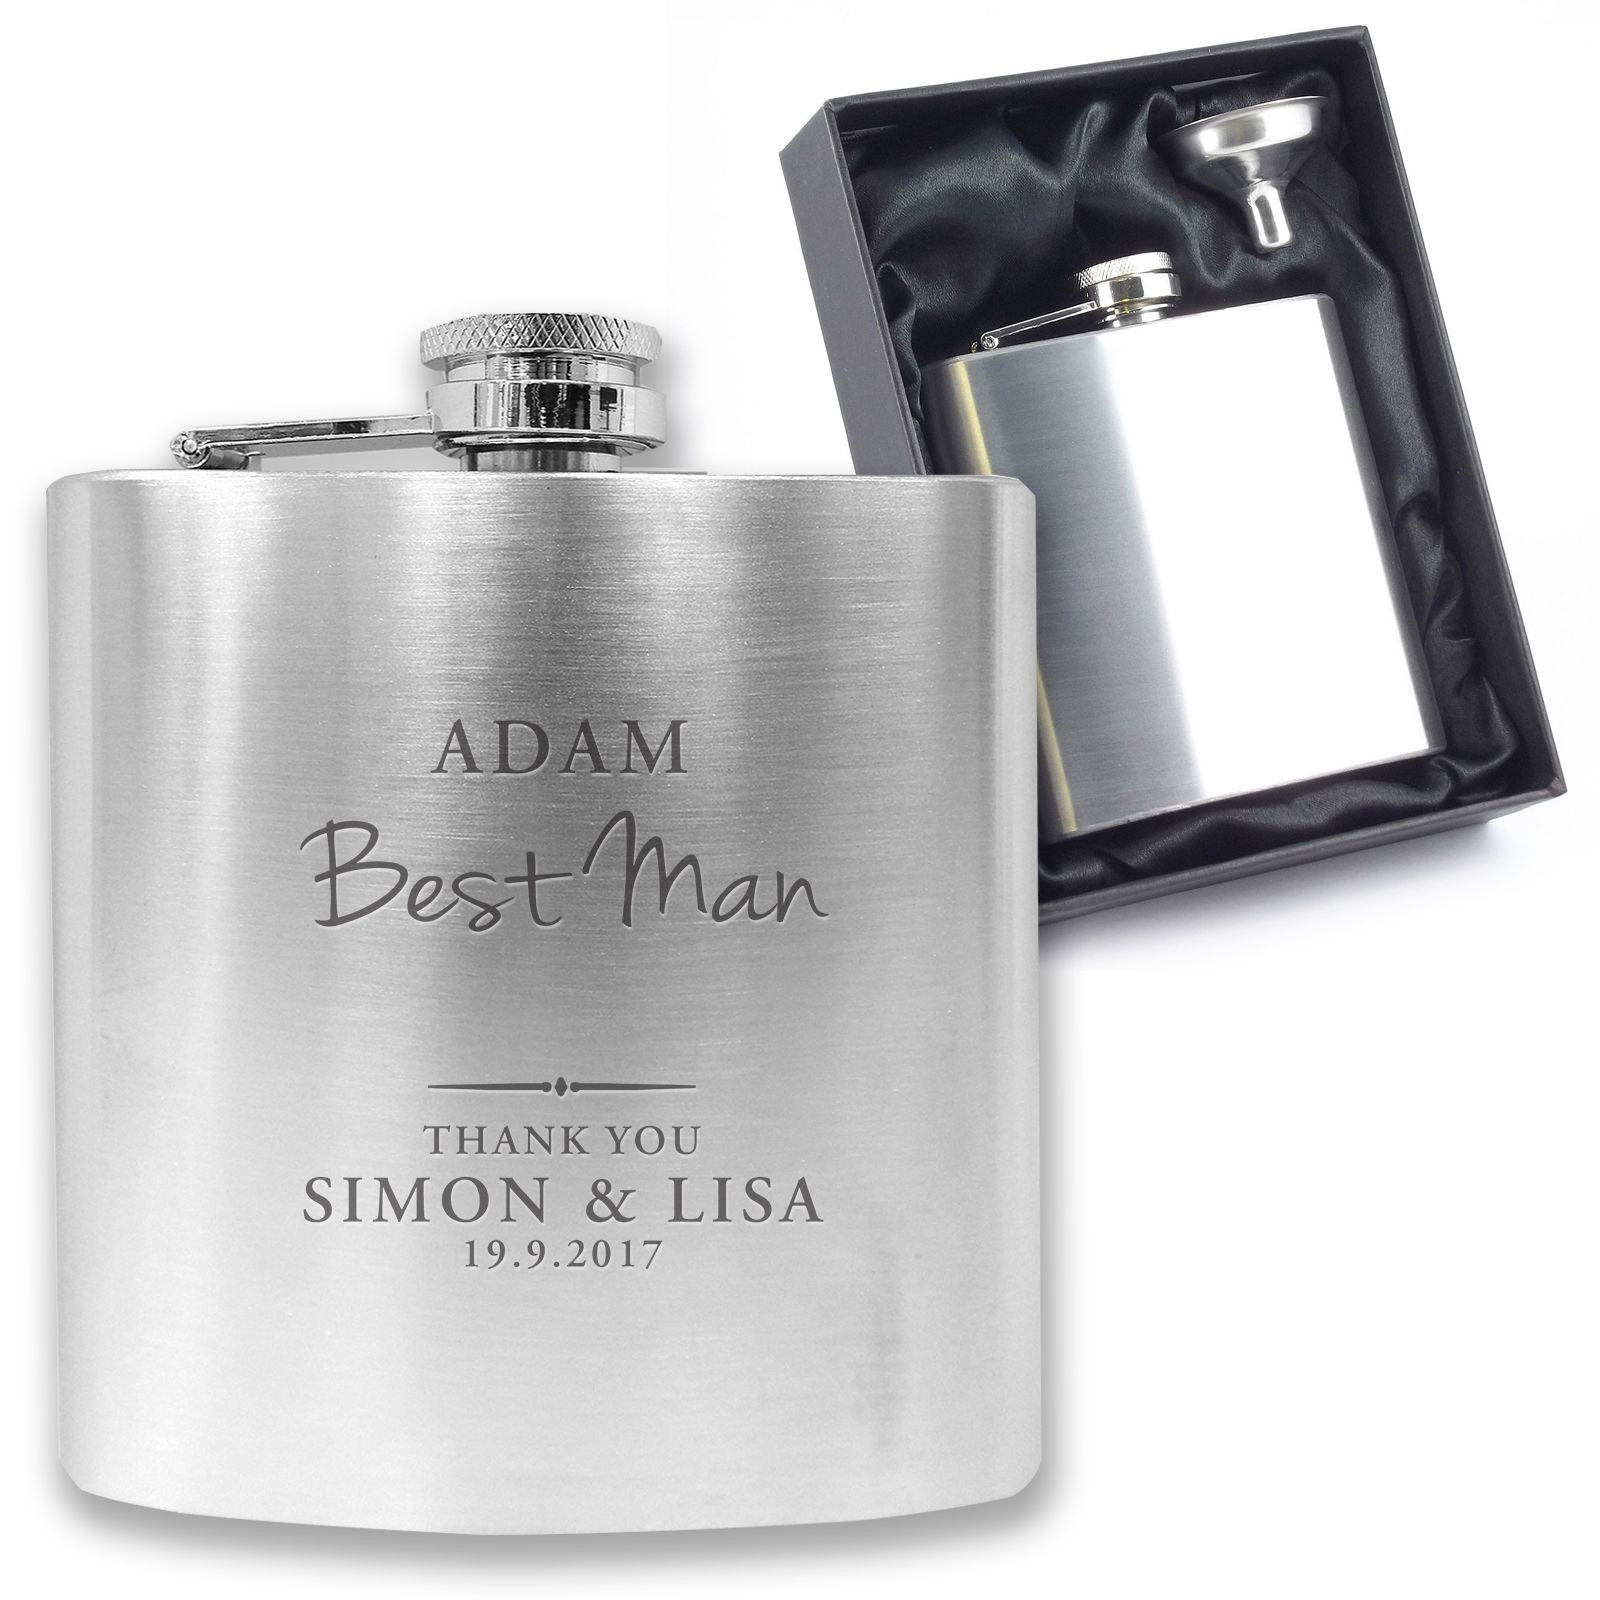 Best ideas about Engraved Gift Ideas . Save or Pin Personalised engraved BEST MAN hip flask wedding thank you Now.